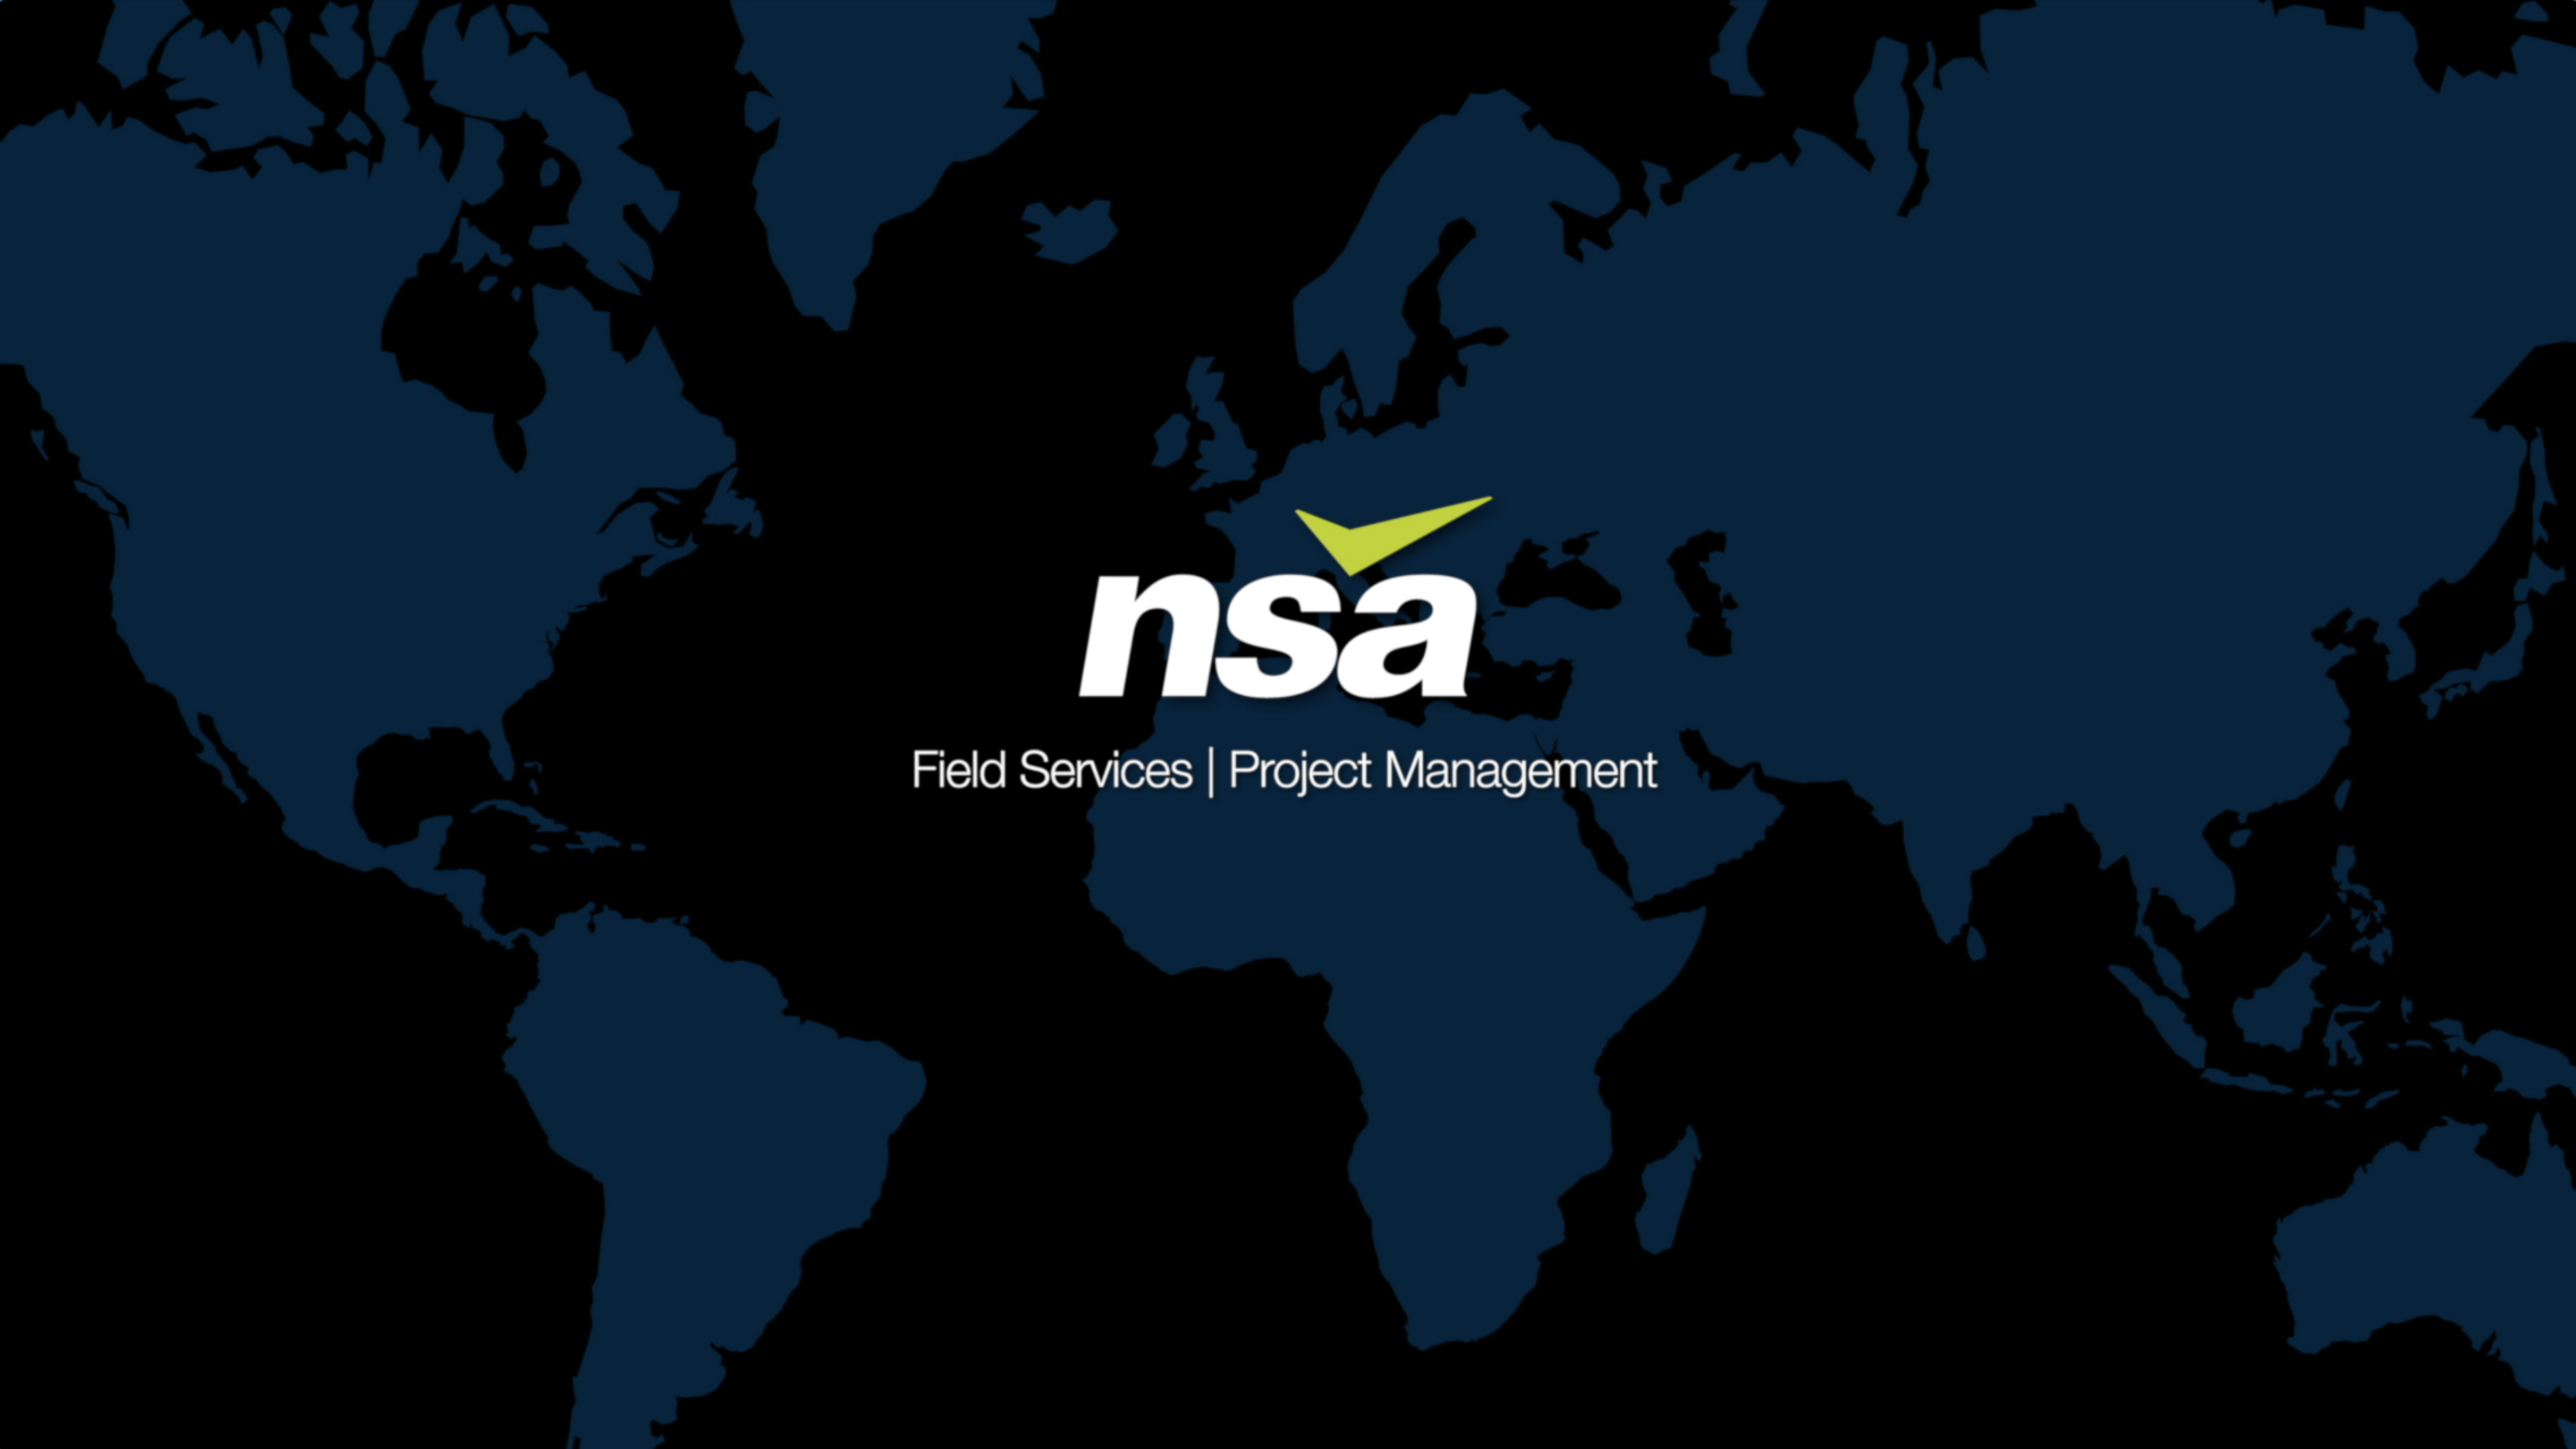 NSA delivers success to thousands of business-owned locations every week. We work in convenience stores, big-box stores, fast-casual restaurants, financial institutions, airports, hospitals, school campuses, sports and entertainment venues, warehouses, government properties, factories and more.